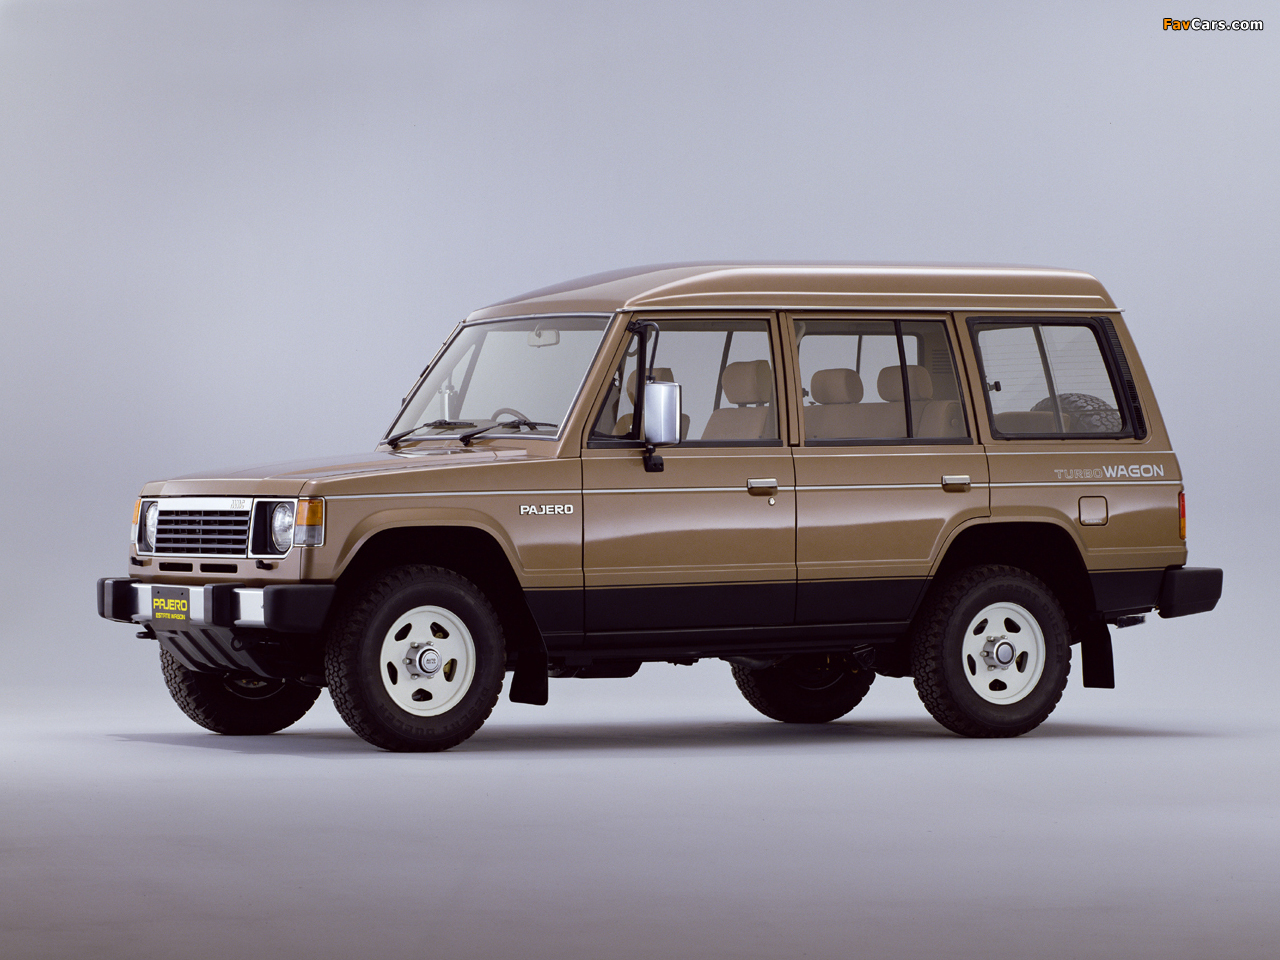 Mitsubishi Pajero Wagon High Roof I 1983 91 Images